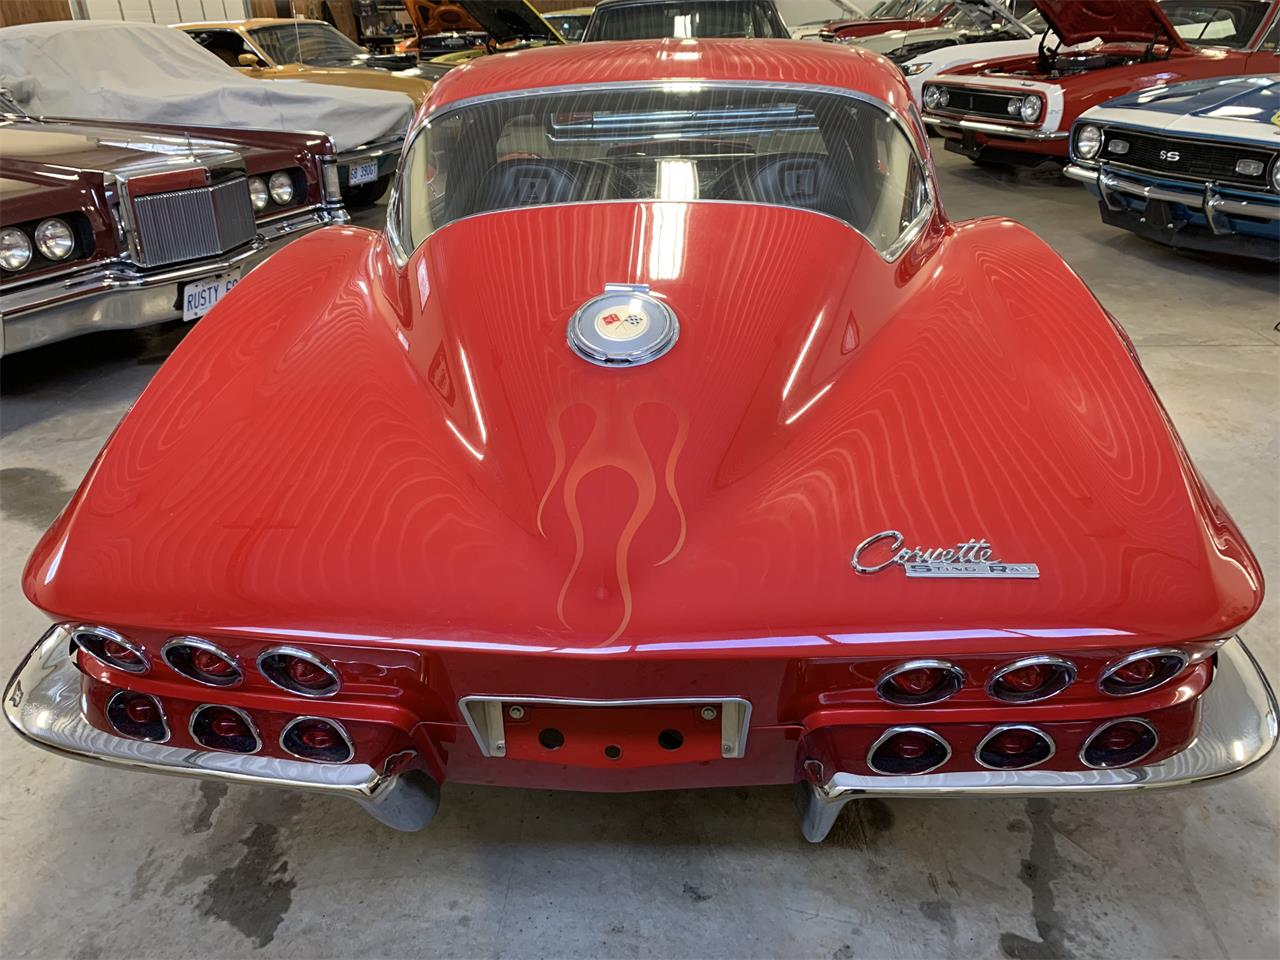 1964 Chevrolet Corvette (CC-1322011) for sale in Toronto, Ontario